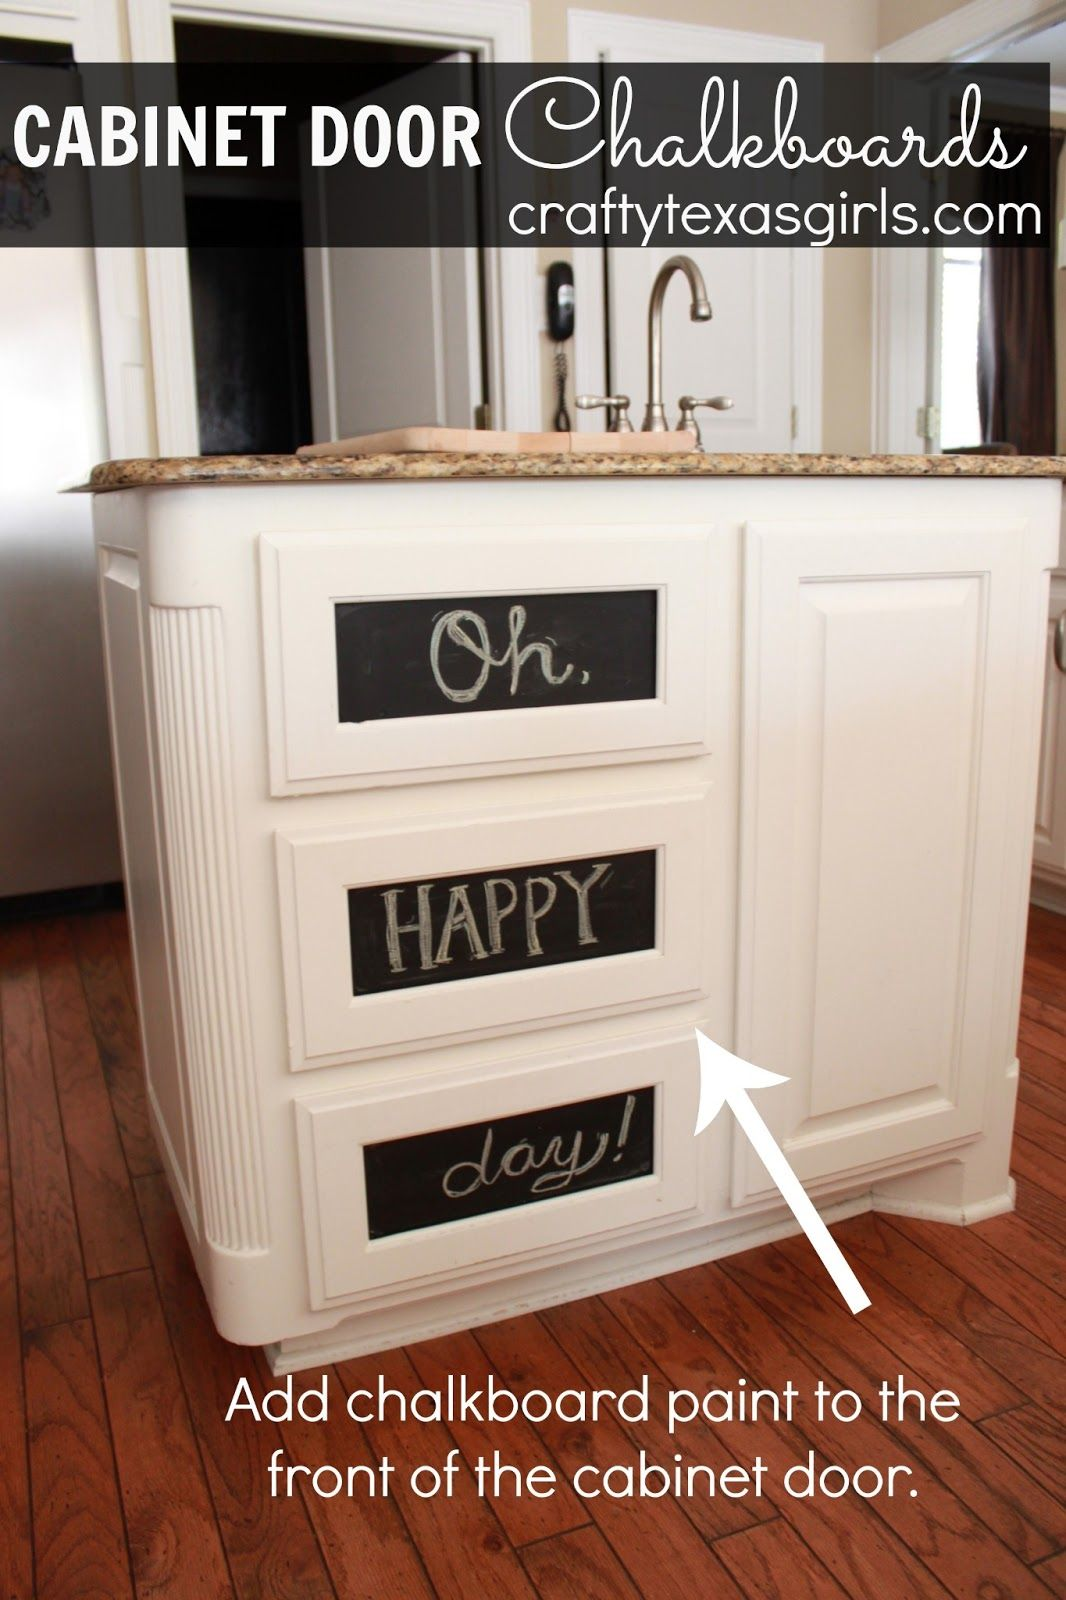 Kitchen Cabinet Chalkboards Diy How To Turn Your Cabinets Into